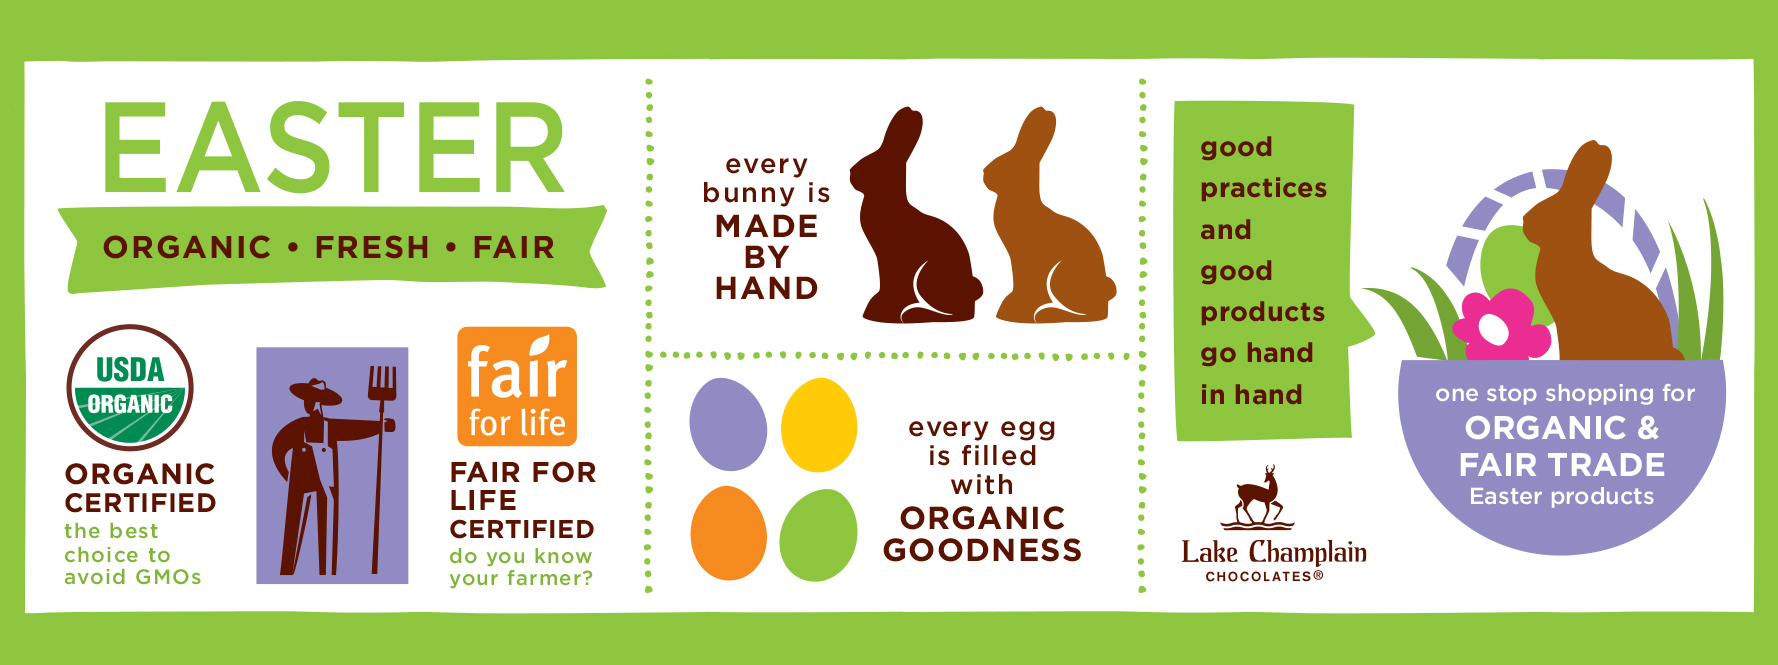 Every bunny is organic and fair trade certified